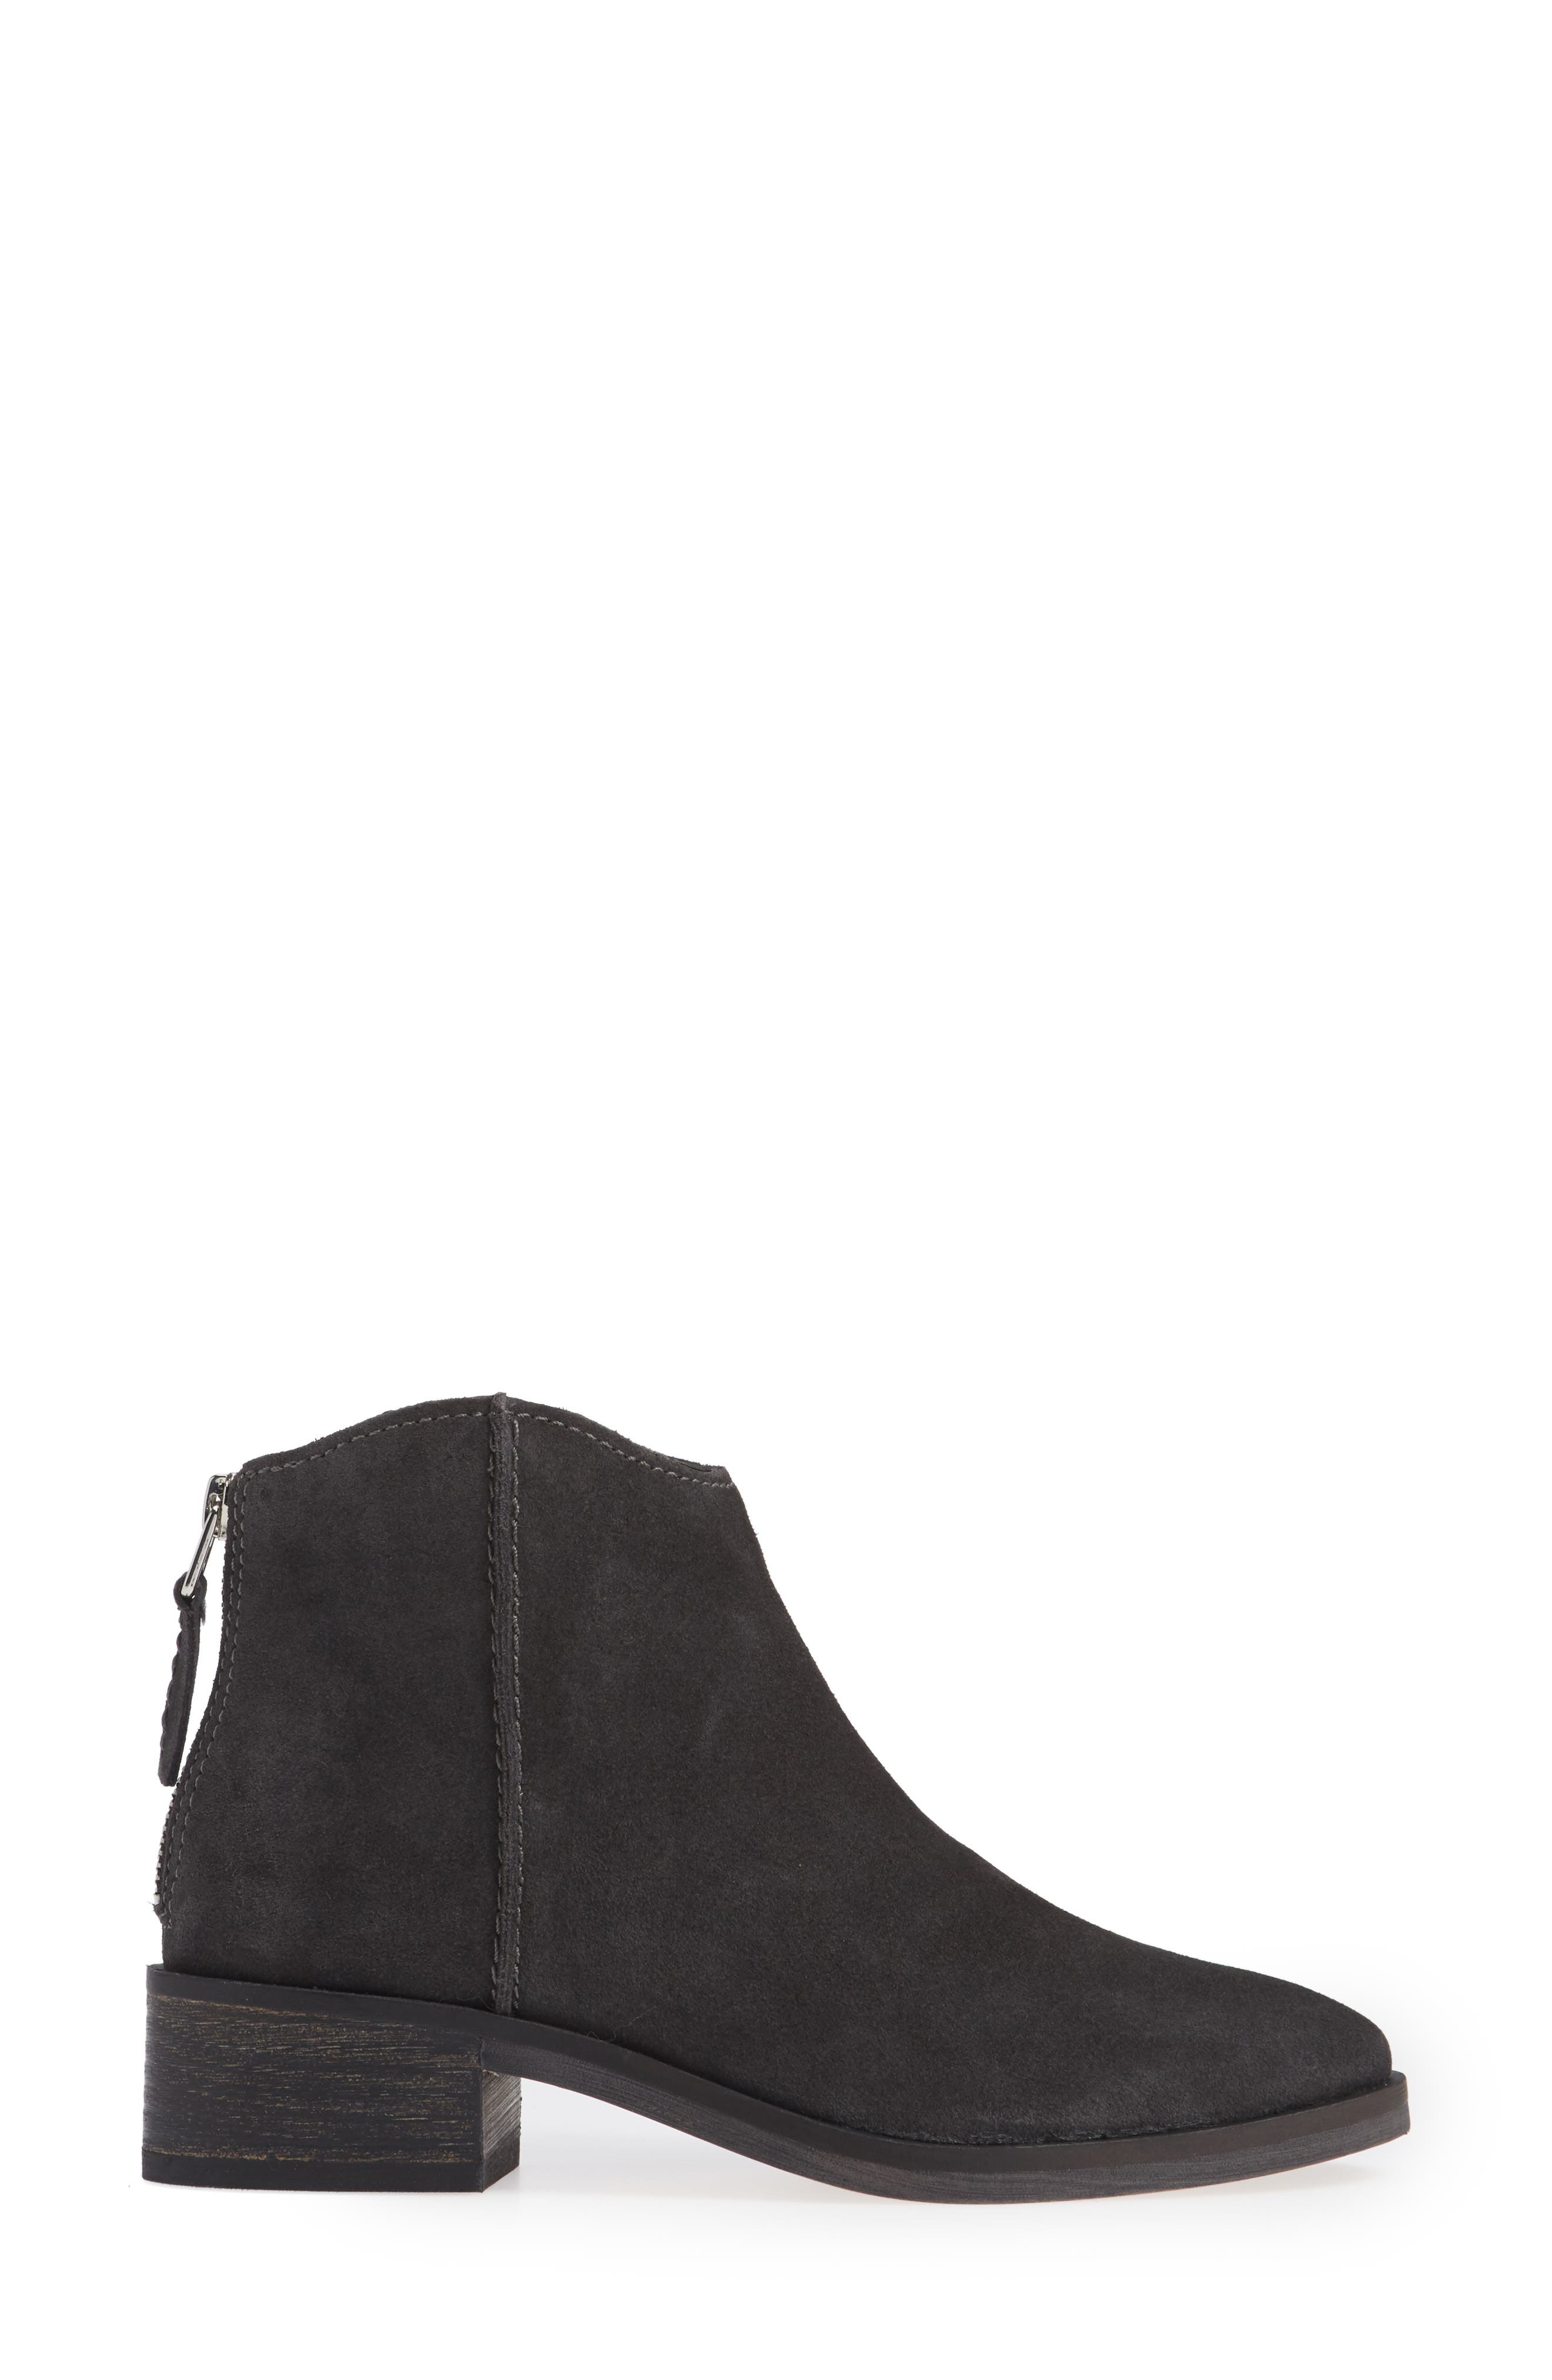 Tucker Bootie,                             Alternate thumbnail 3, color,                             ANTHRACITE SUEDE